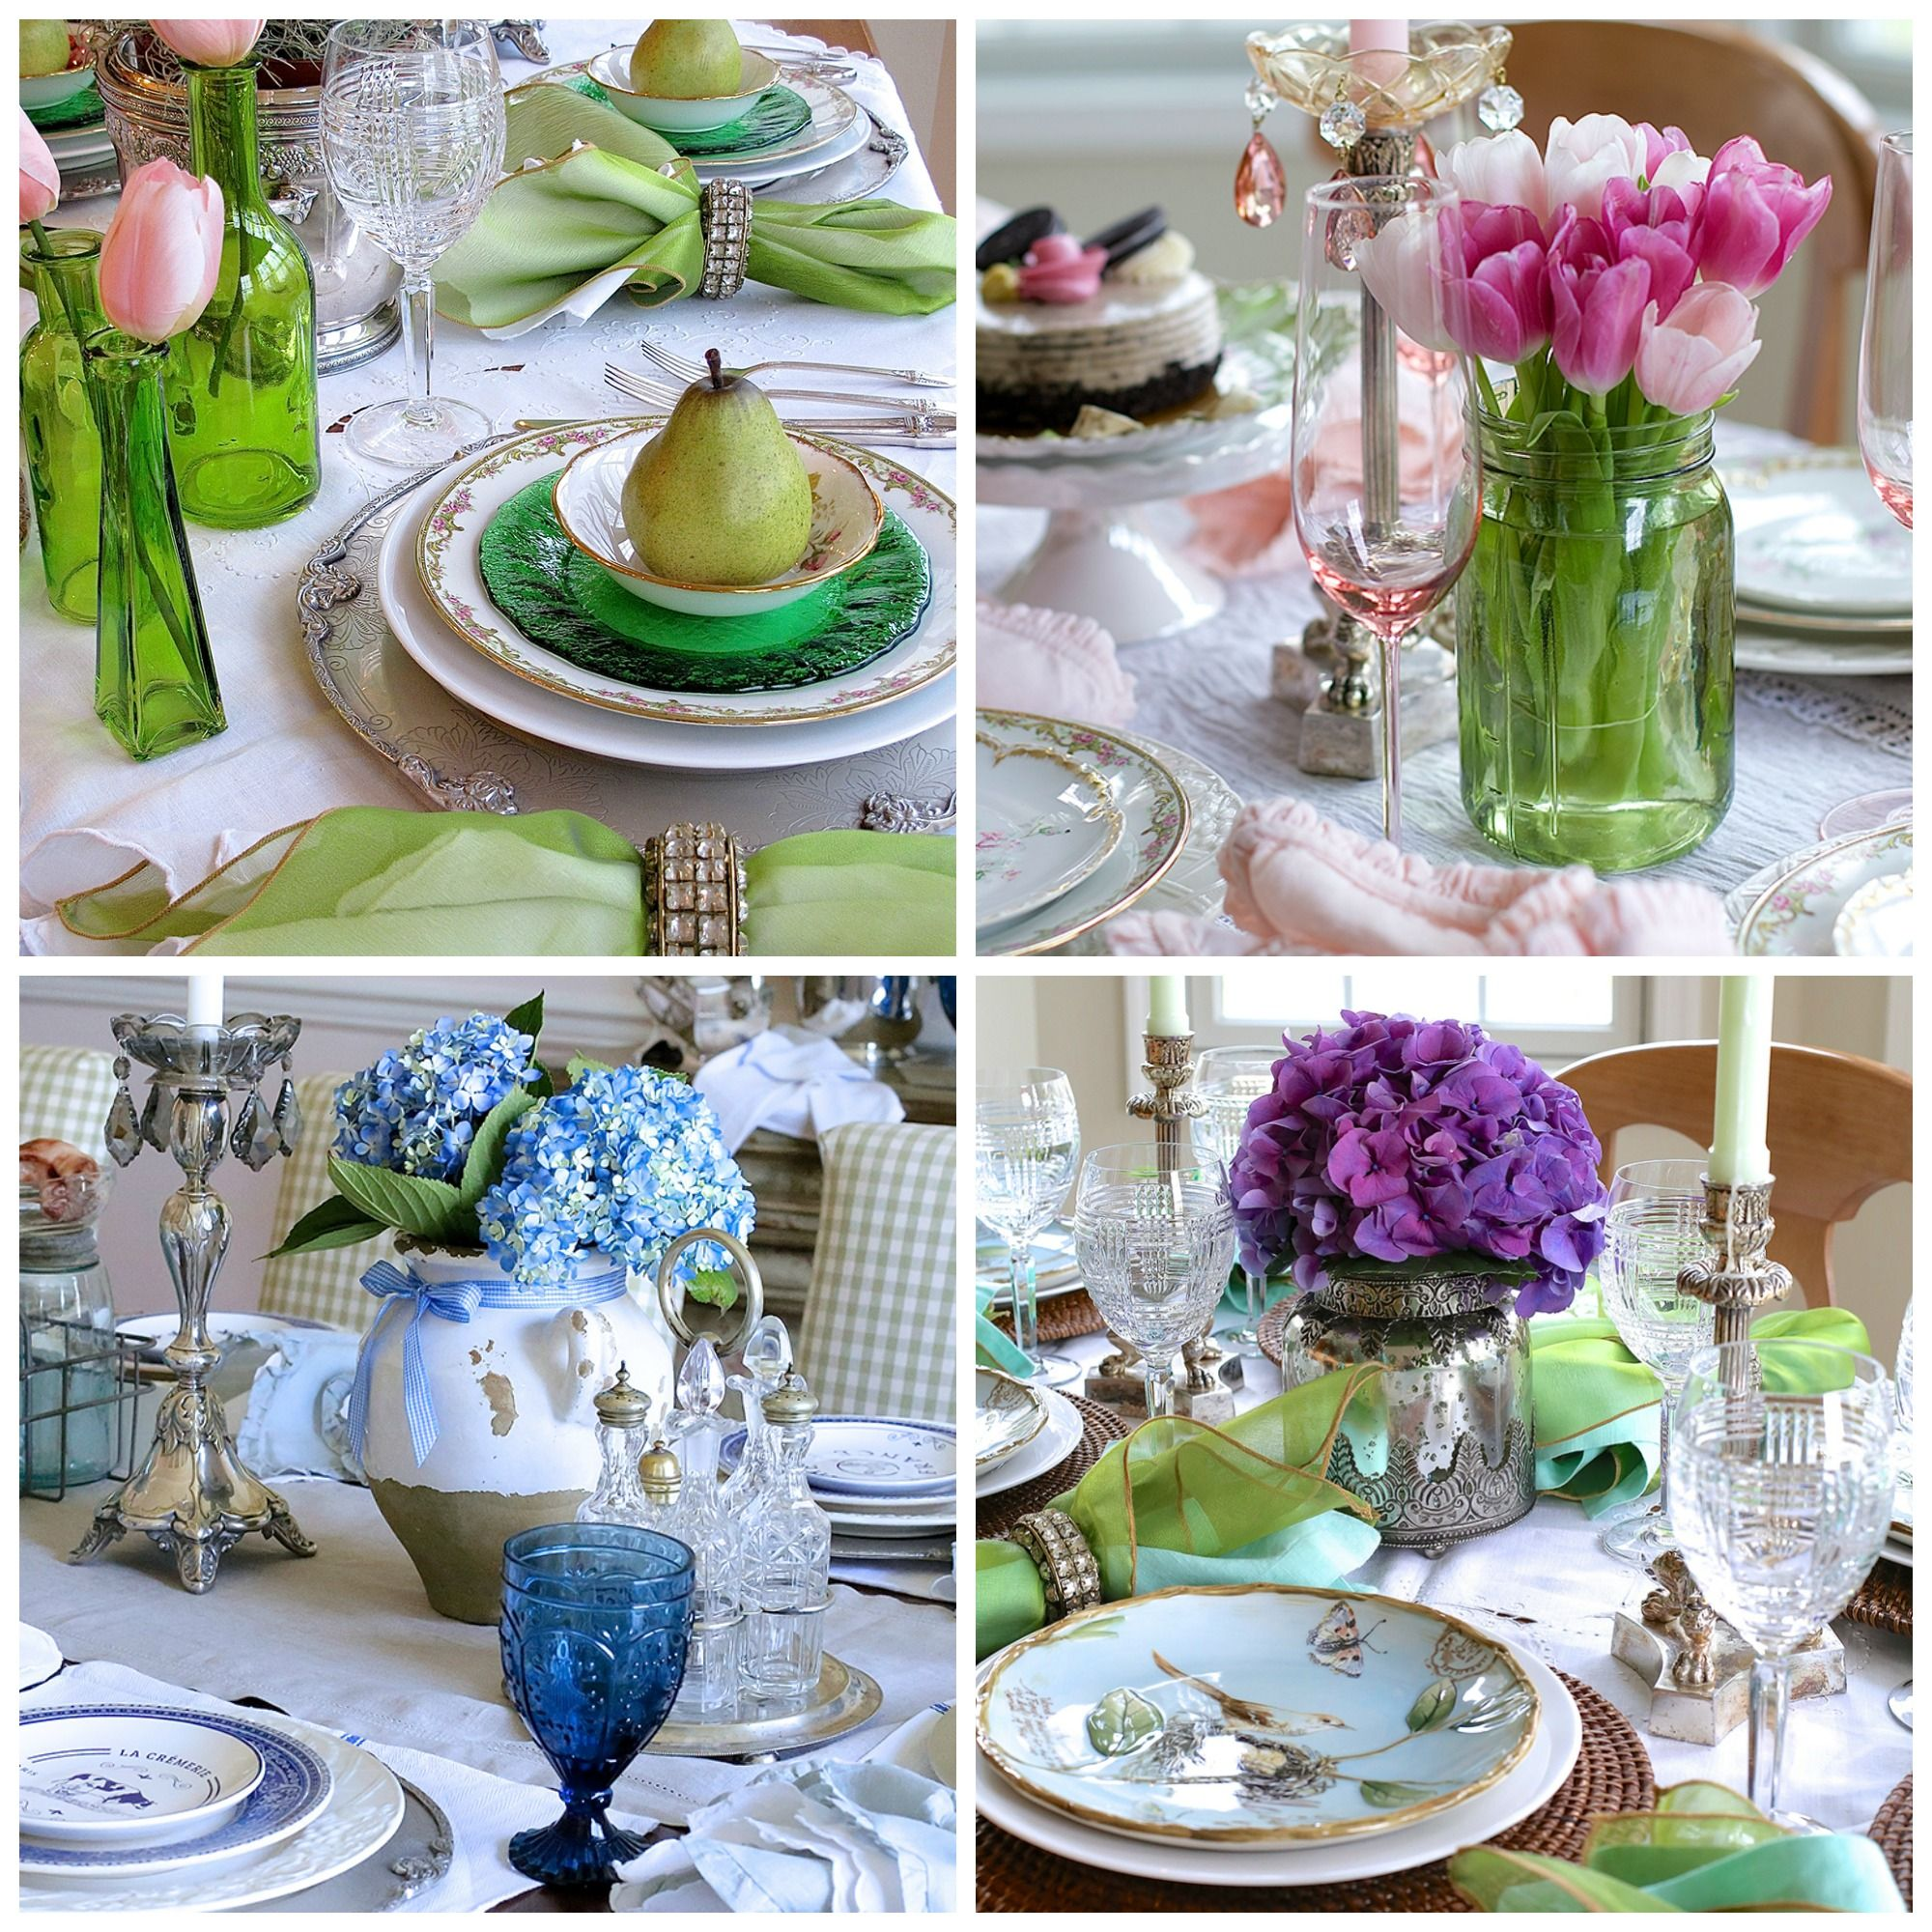 Spring Centerpieces And Seasonal Table Decoration Ideas Spring Centerpiece Dining Table Centerpiece Table Settings Everyday